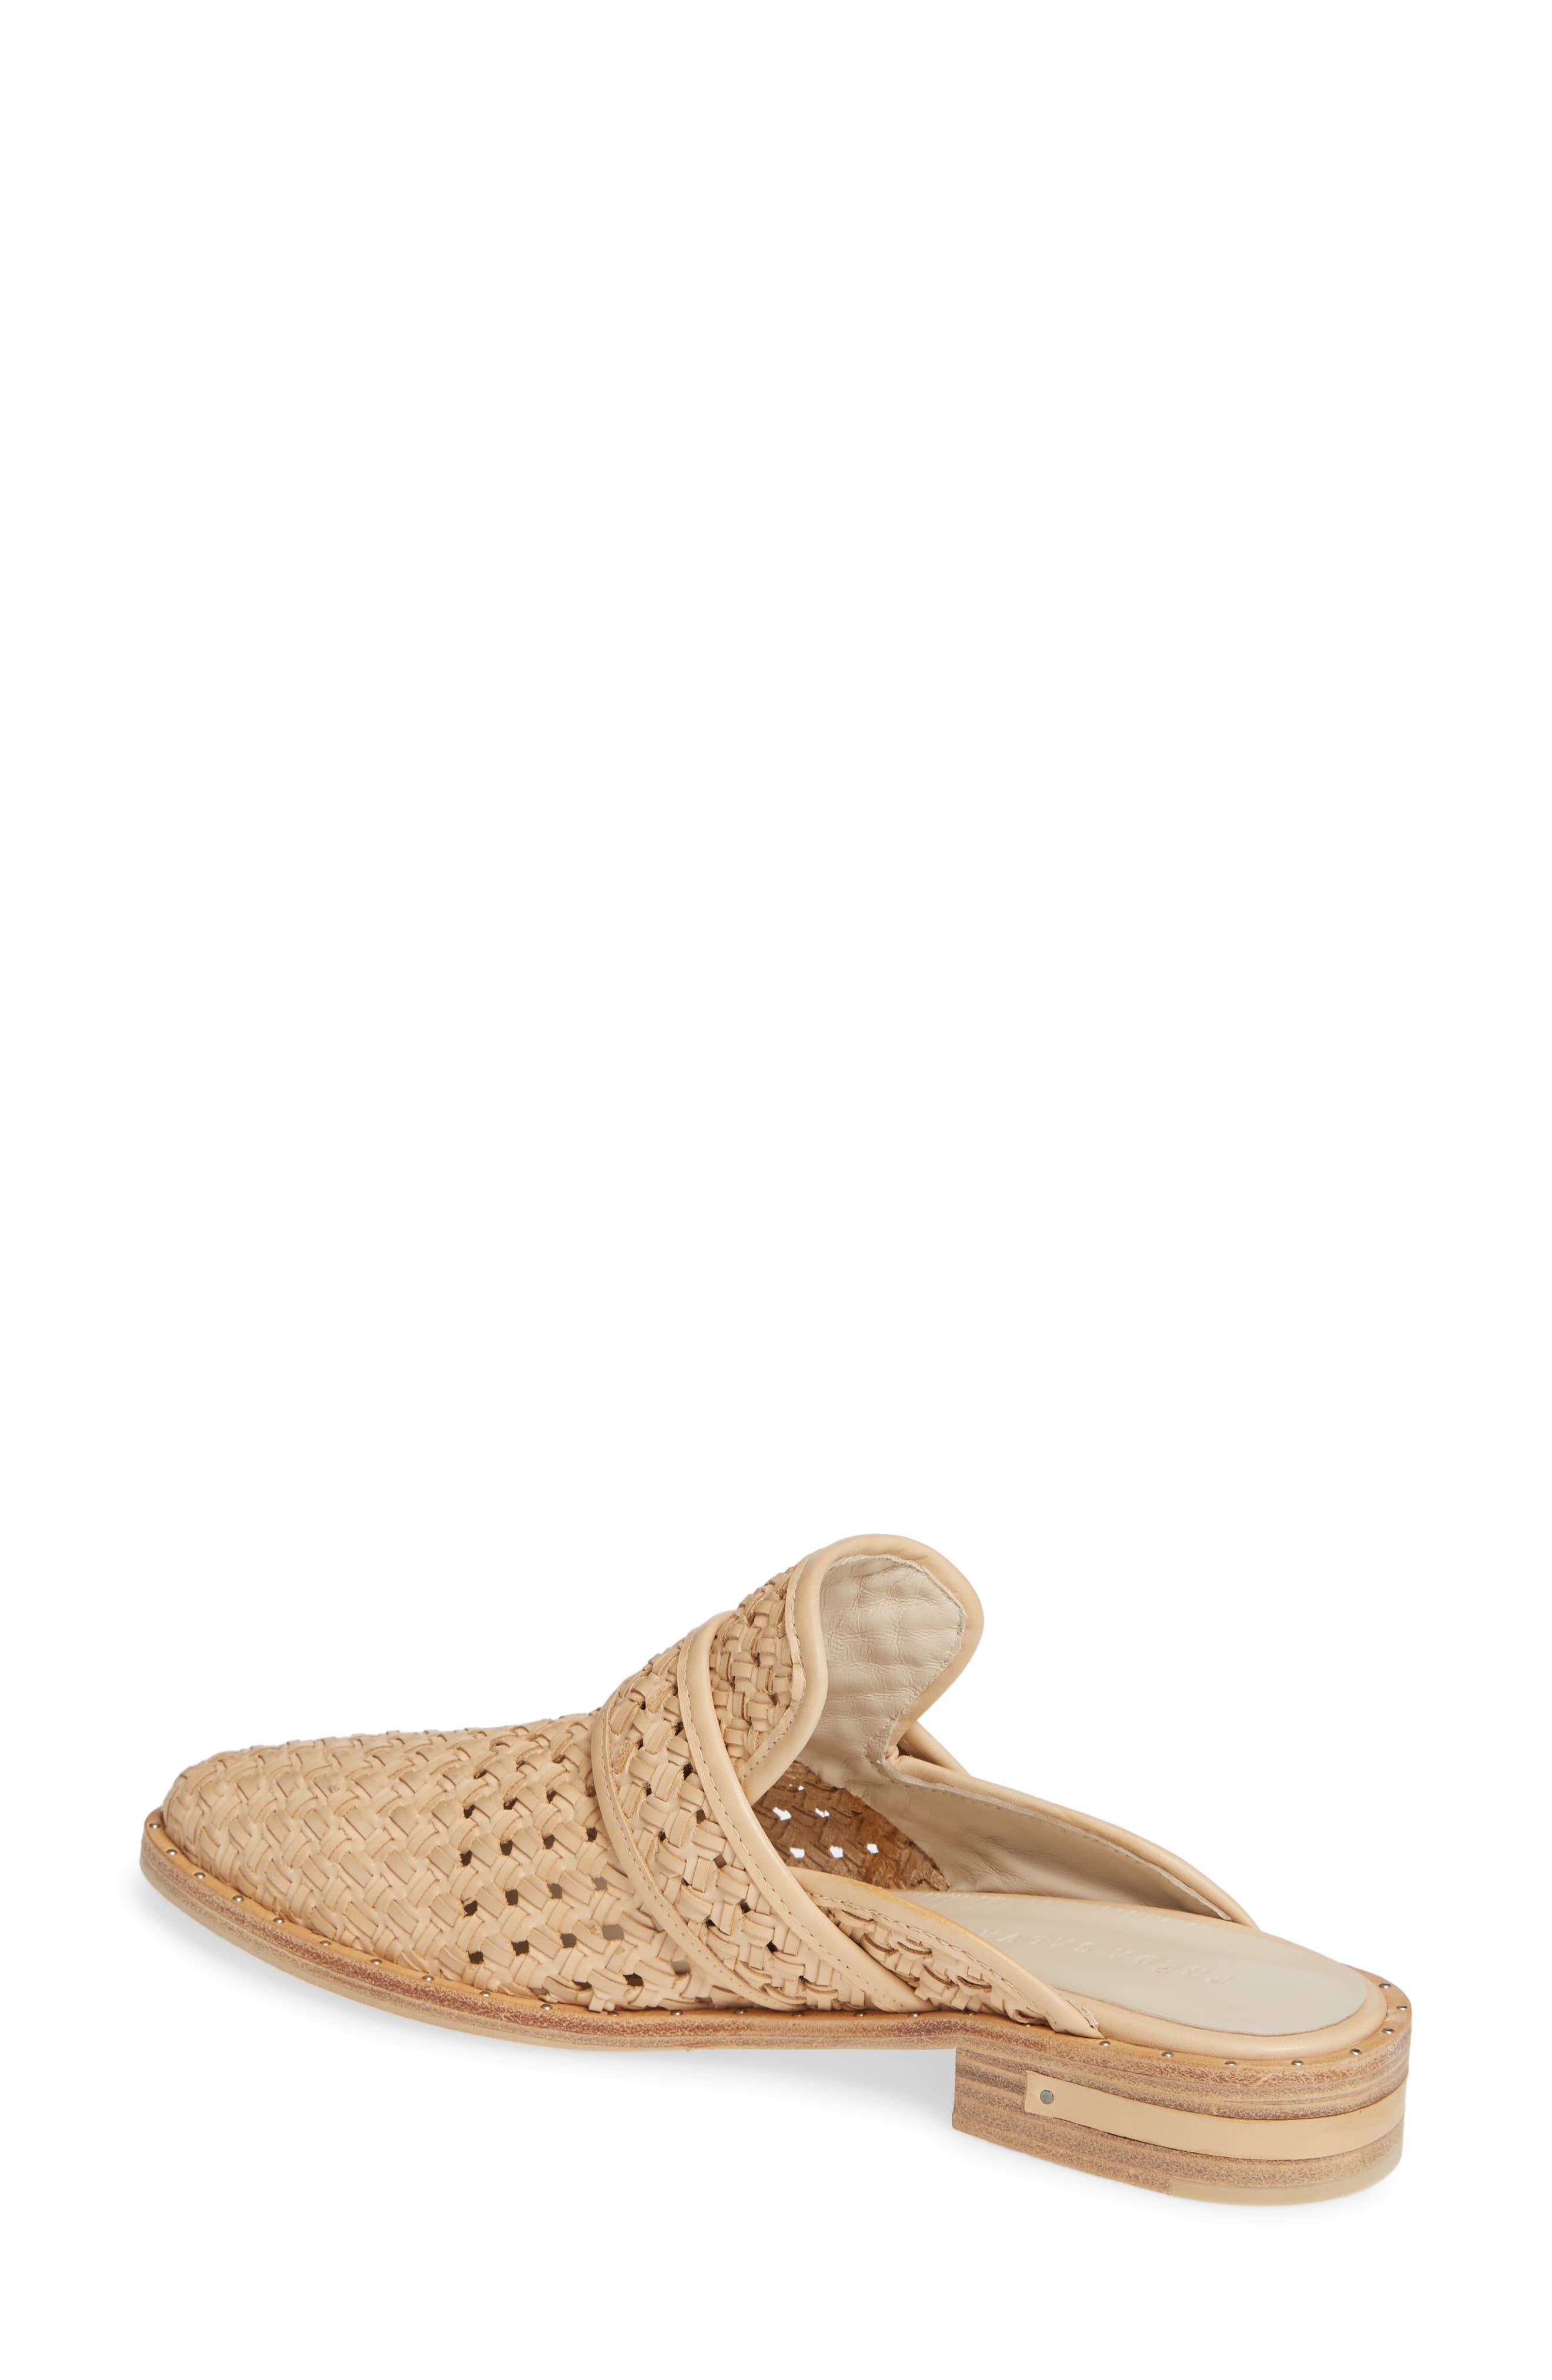 Keen Loafer Mule,                             Alternate thumbnail 2, color,                             NUDE WOVEN